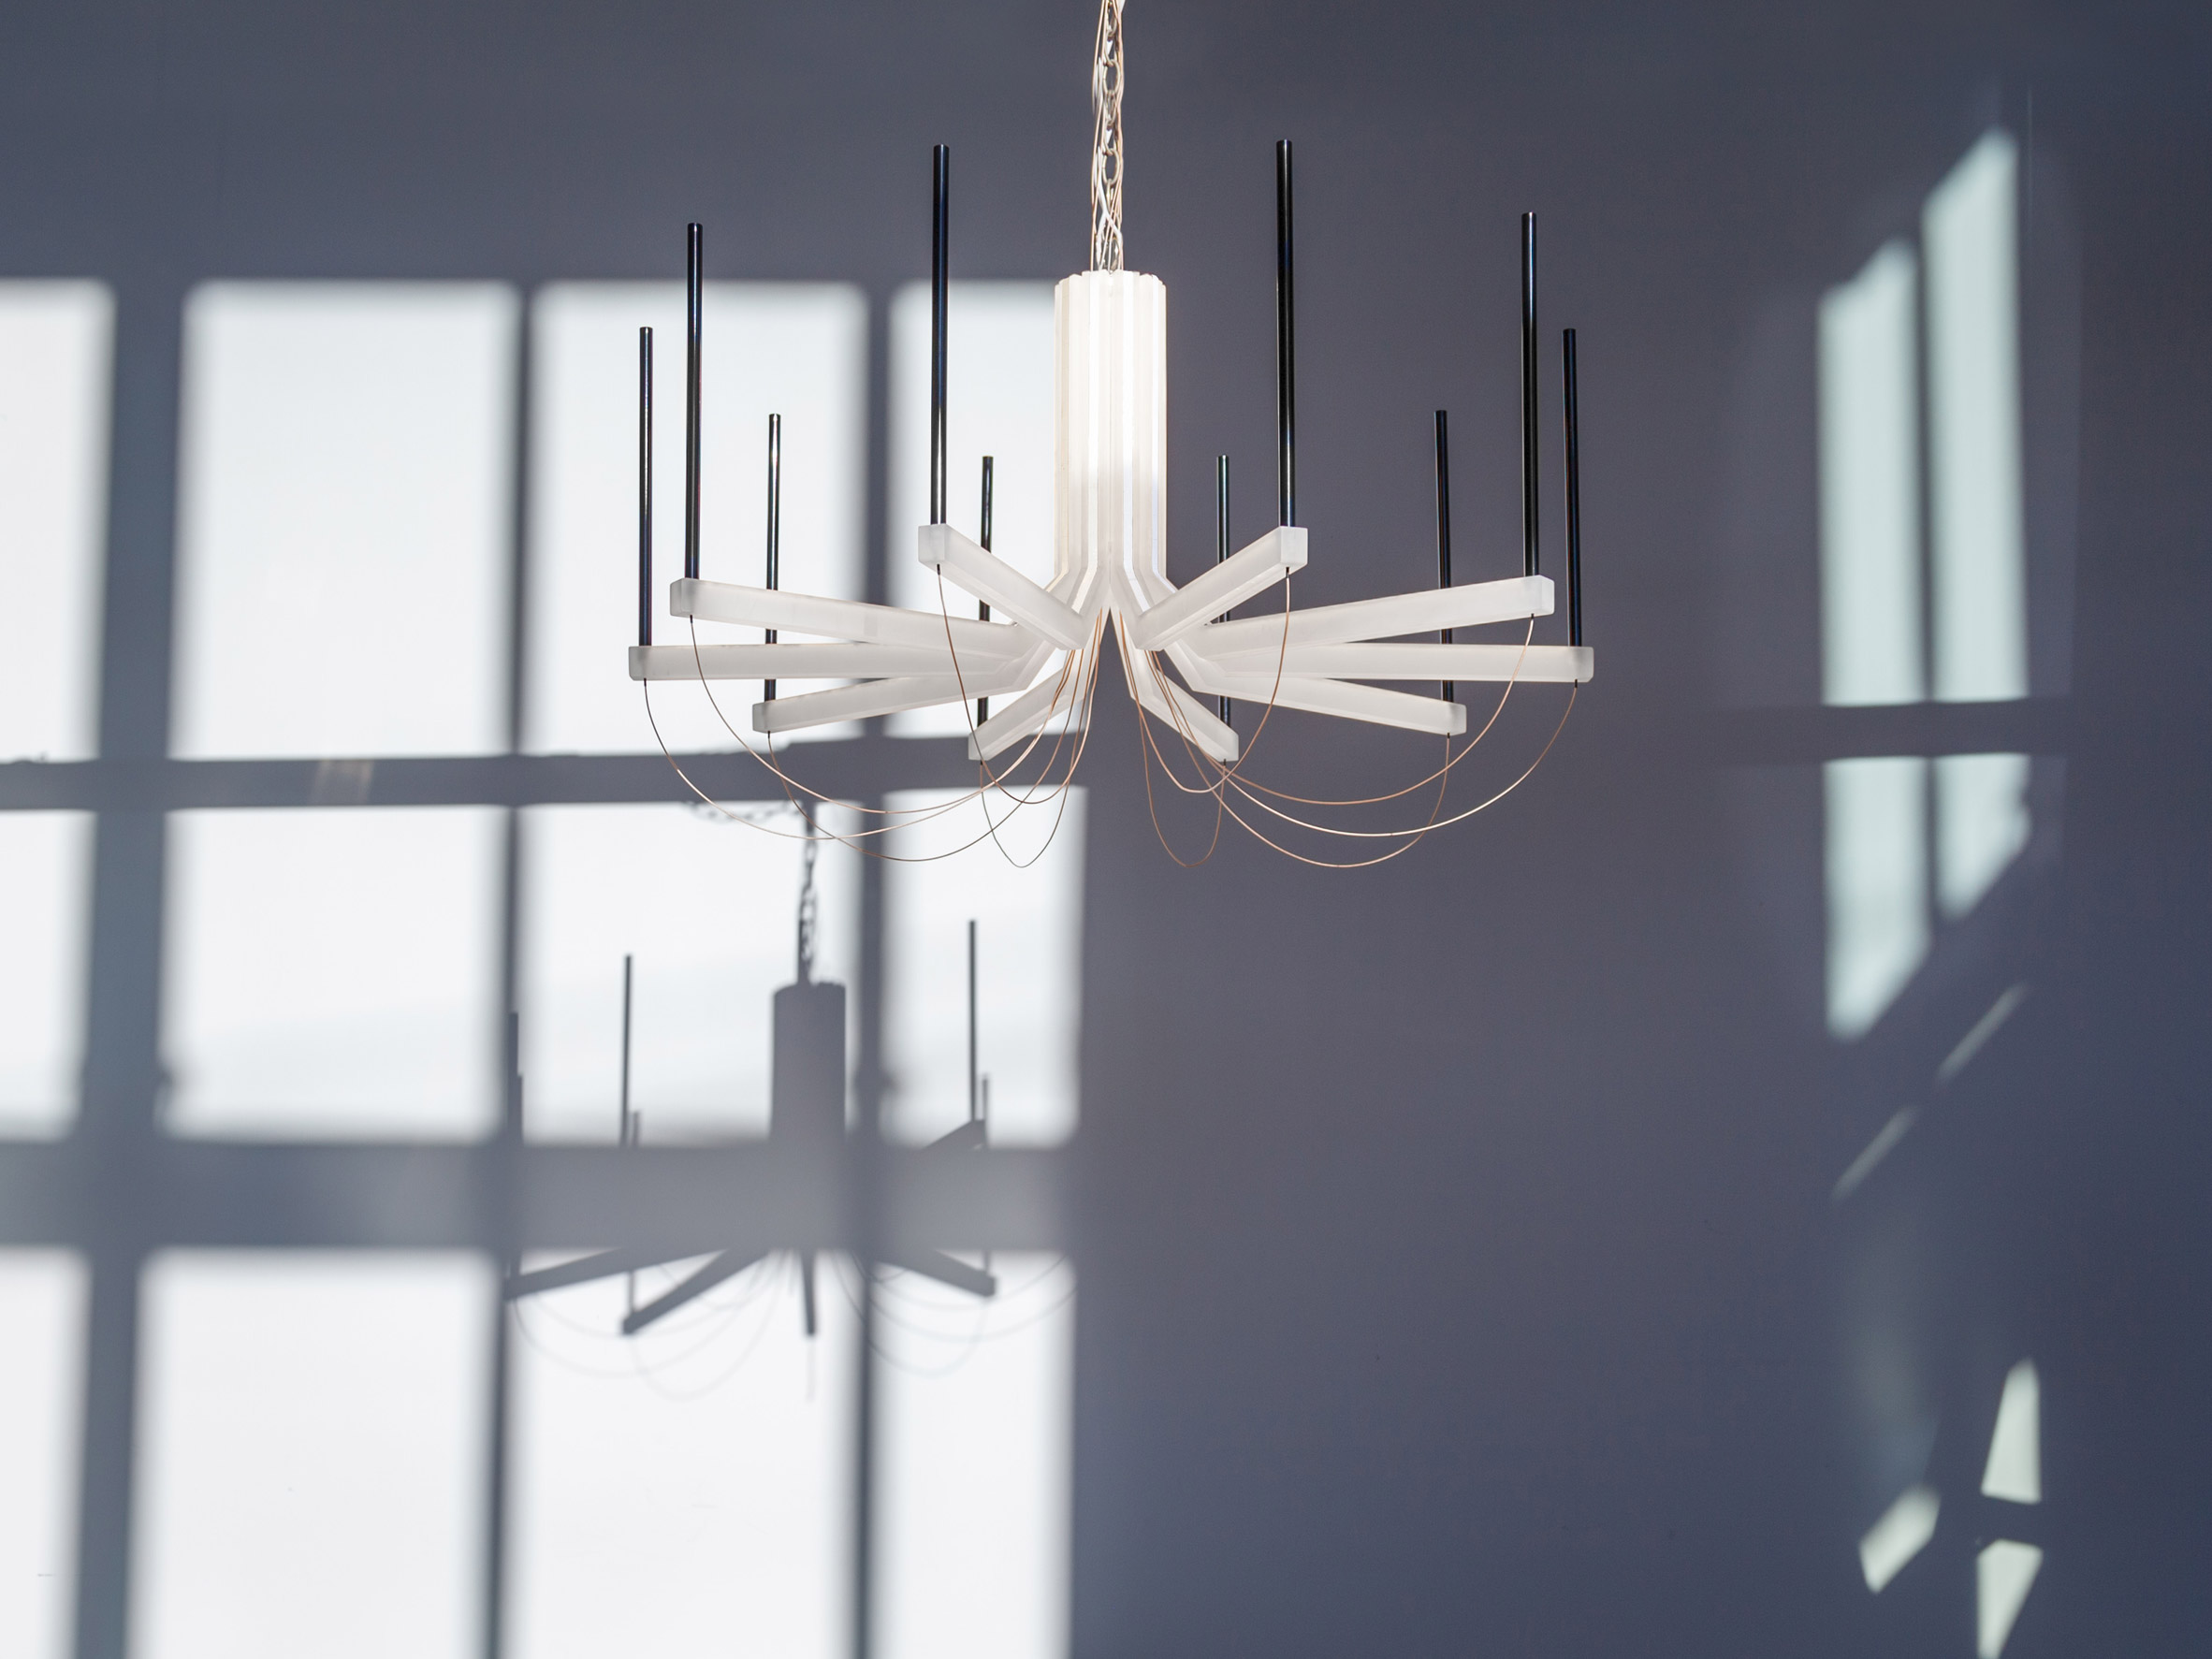 The chandelier takes cues from traditional chandeliers